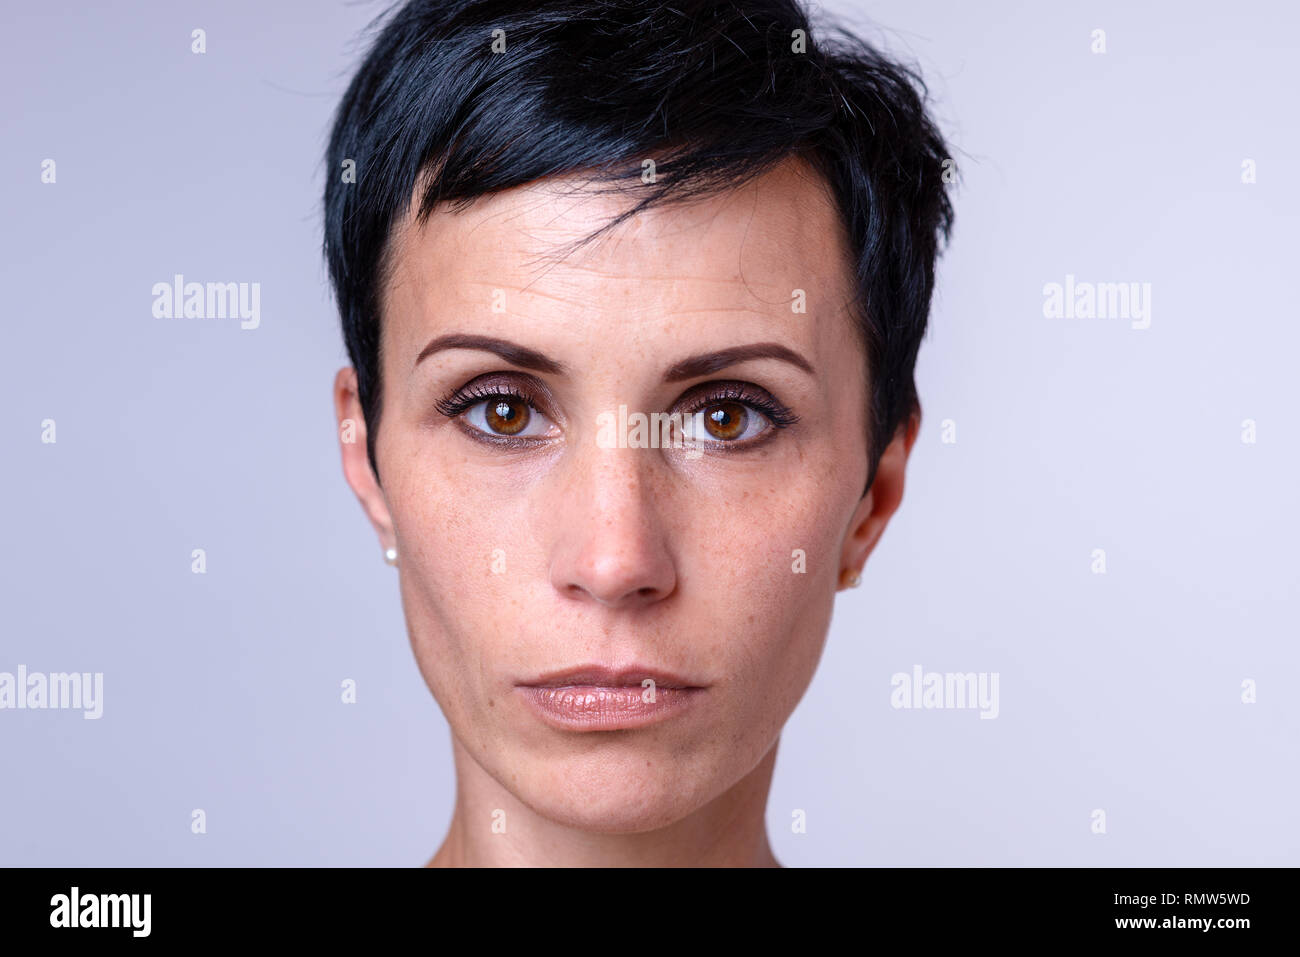 Attractive Woman With A Short Modern Hairstyle And Big Brown